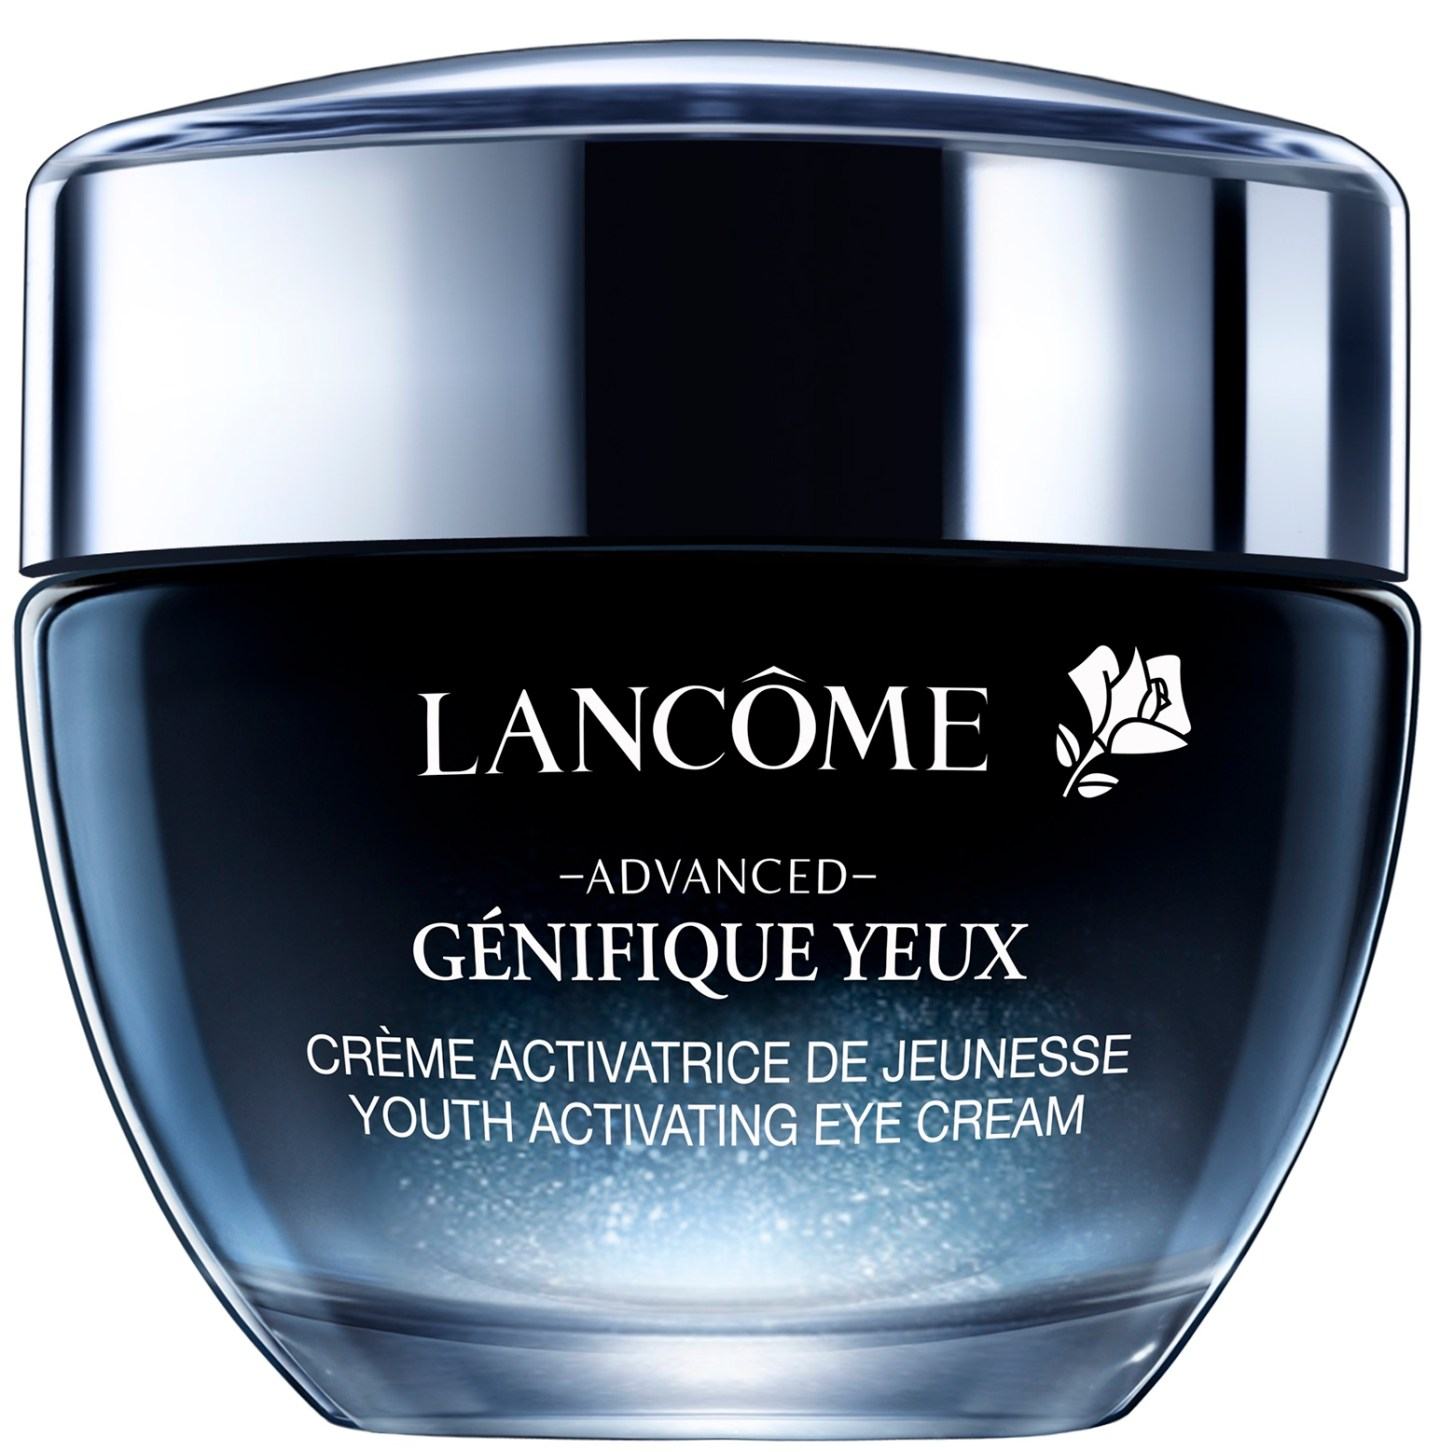 Lancôme's Adds New Eye Cream to Advanced Génefique Collection